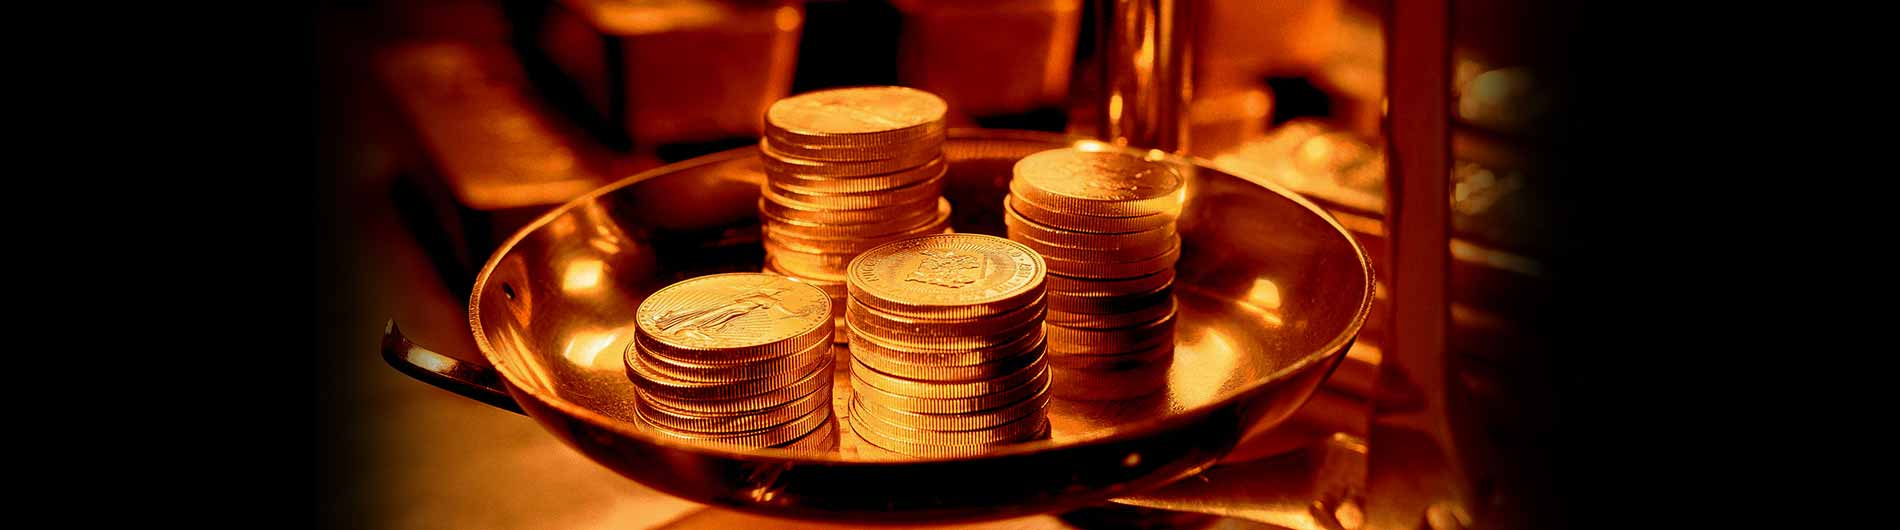 Gold coins in balance